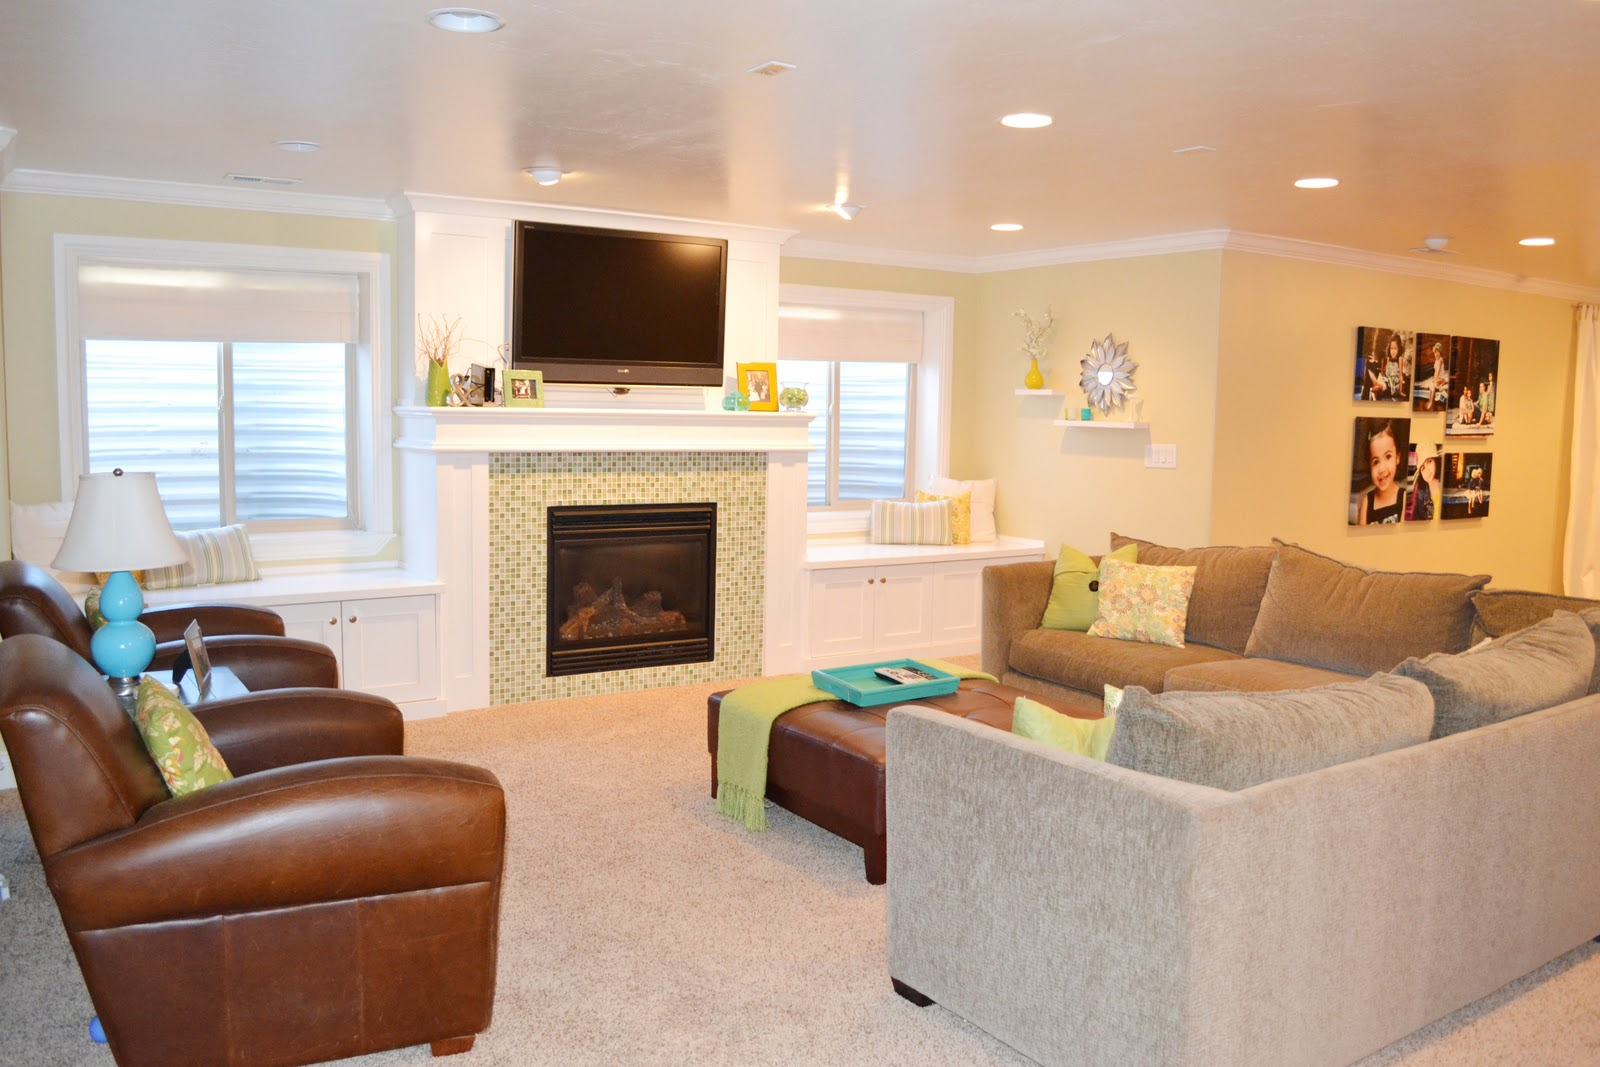 sita montgomery interiors my home tour basement family room